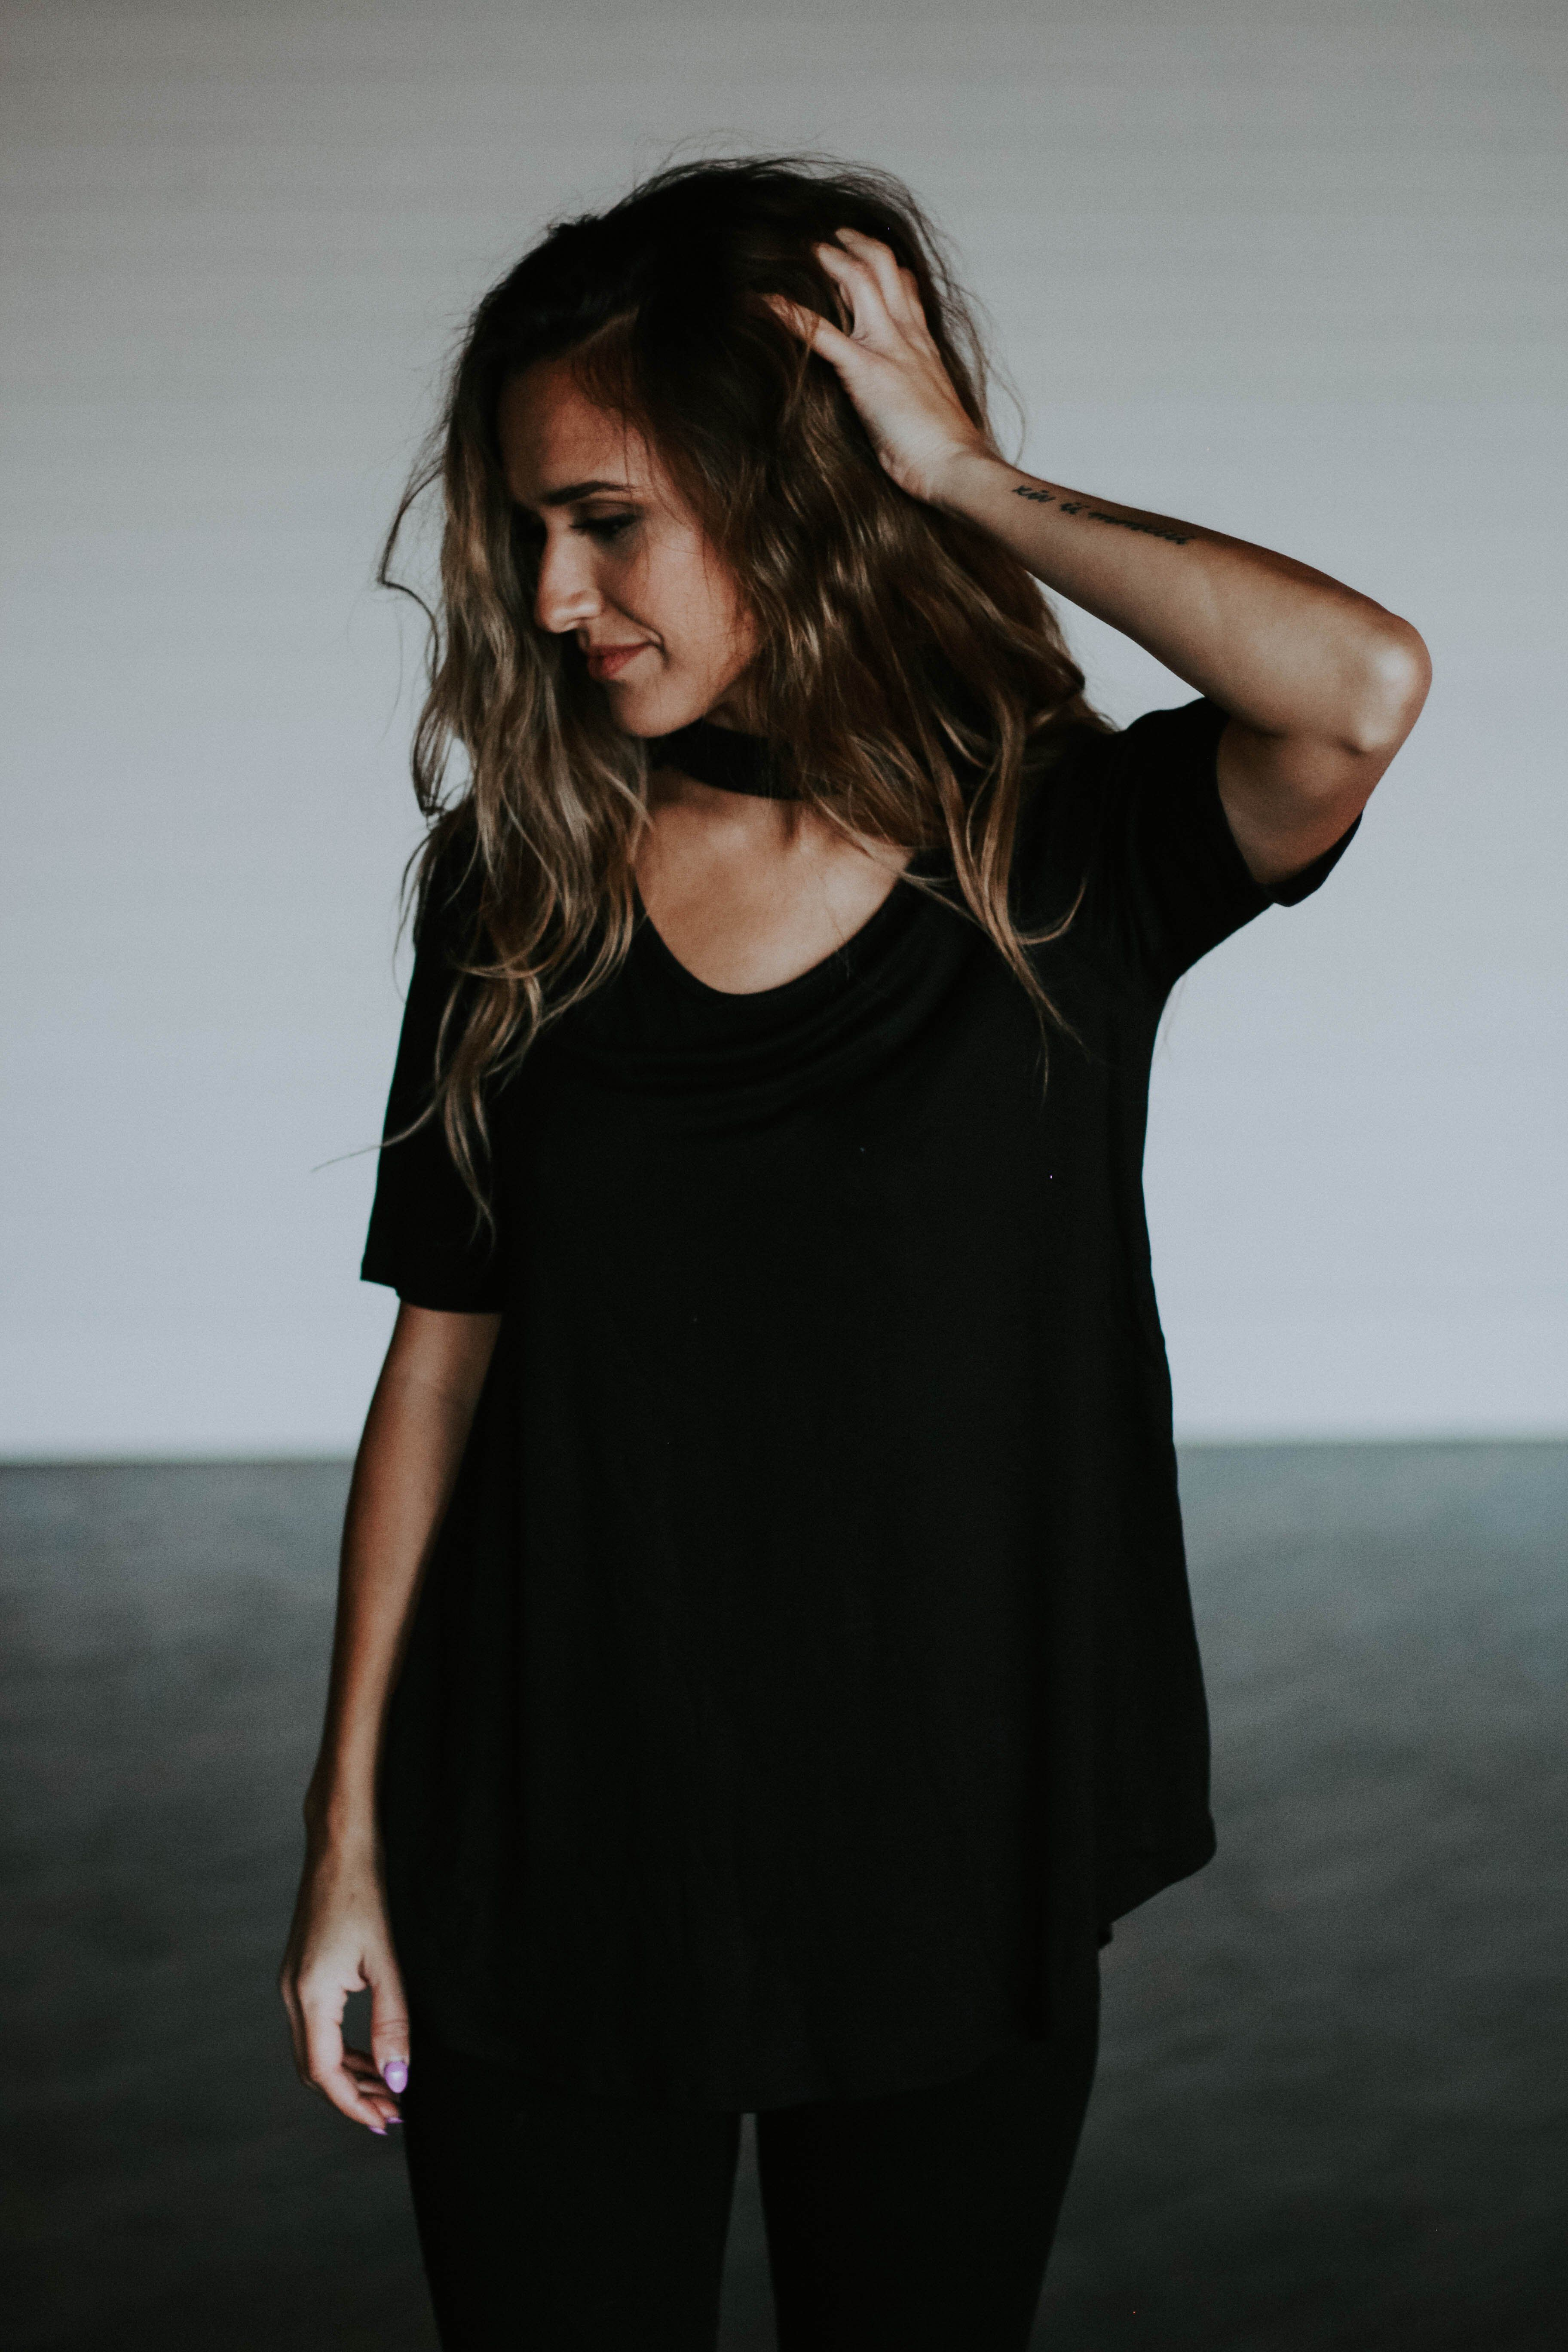 The Layla Top in Black Women s Top with Choker Neck f3525f02d